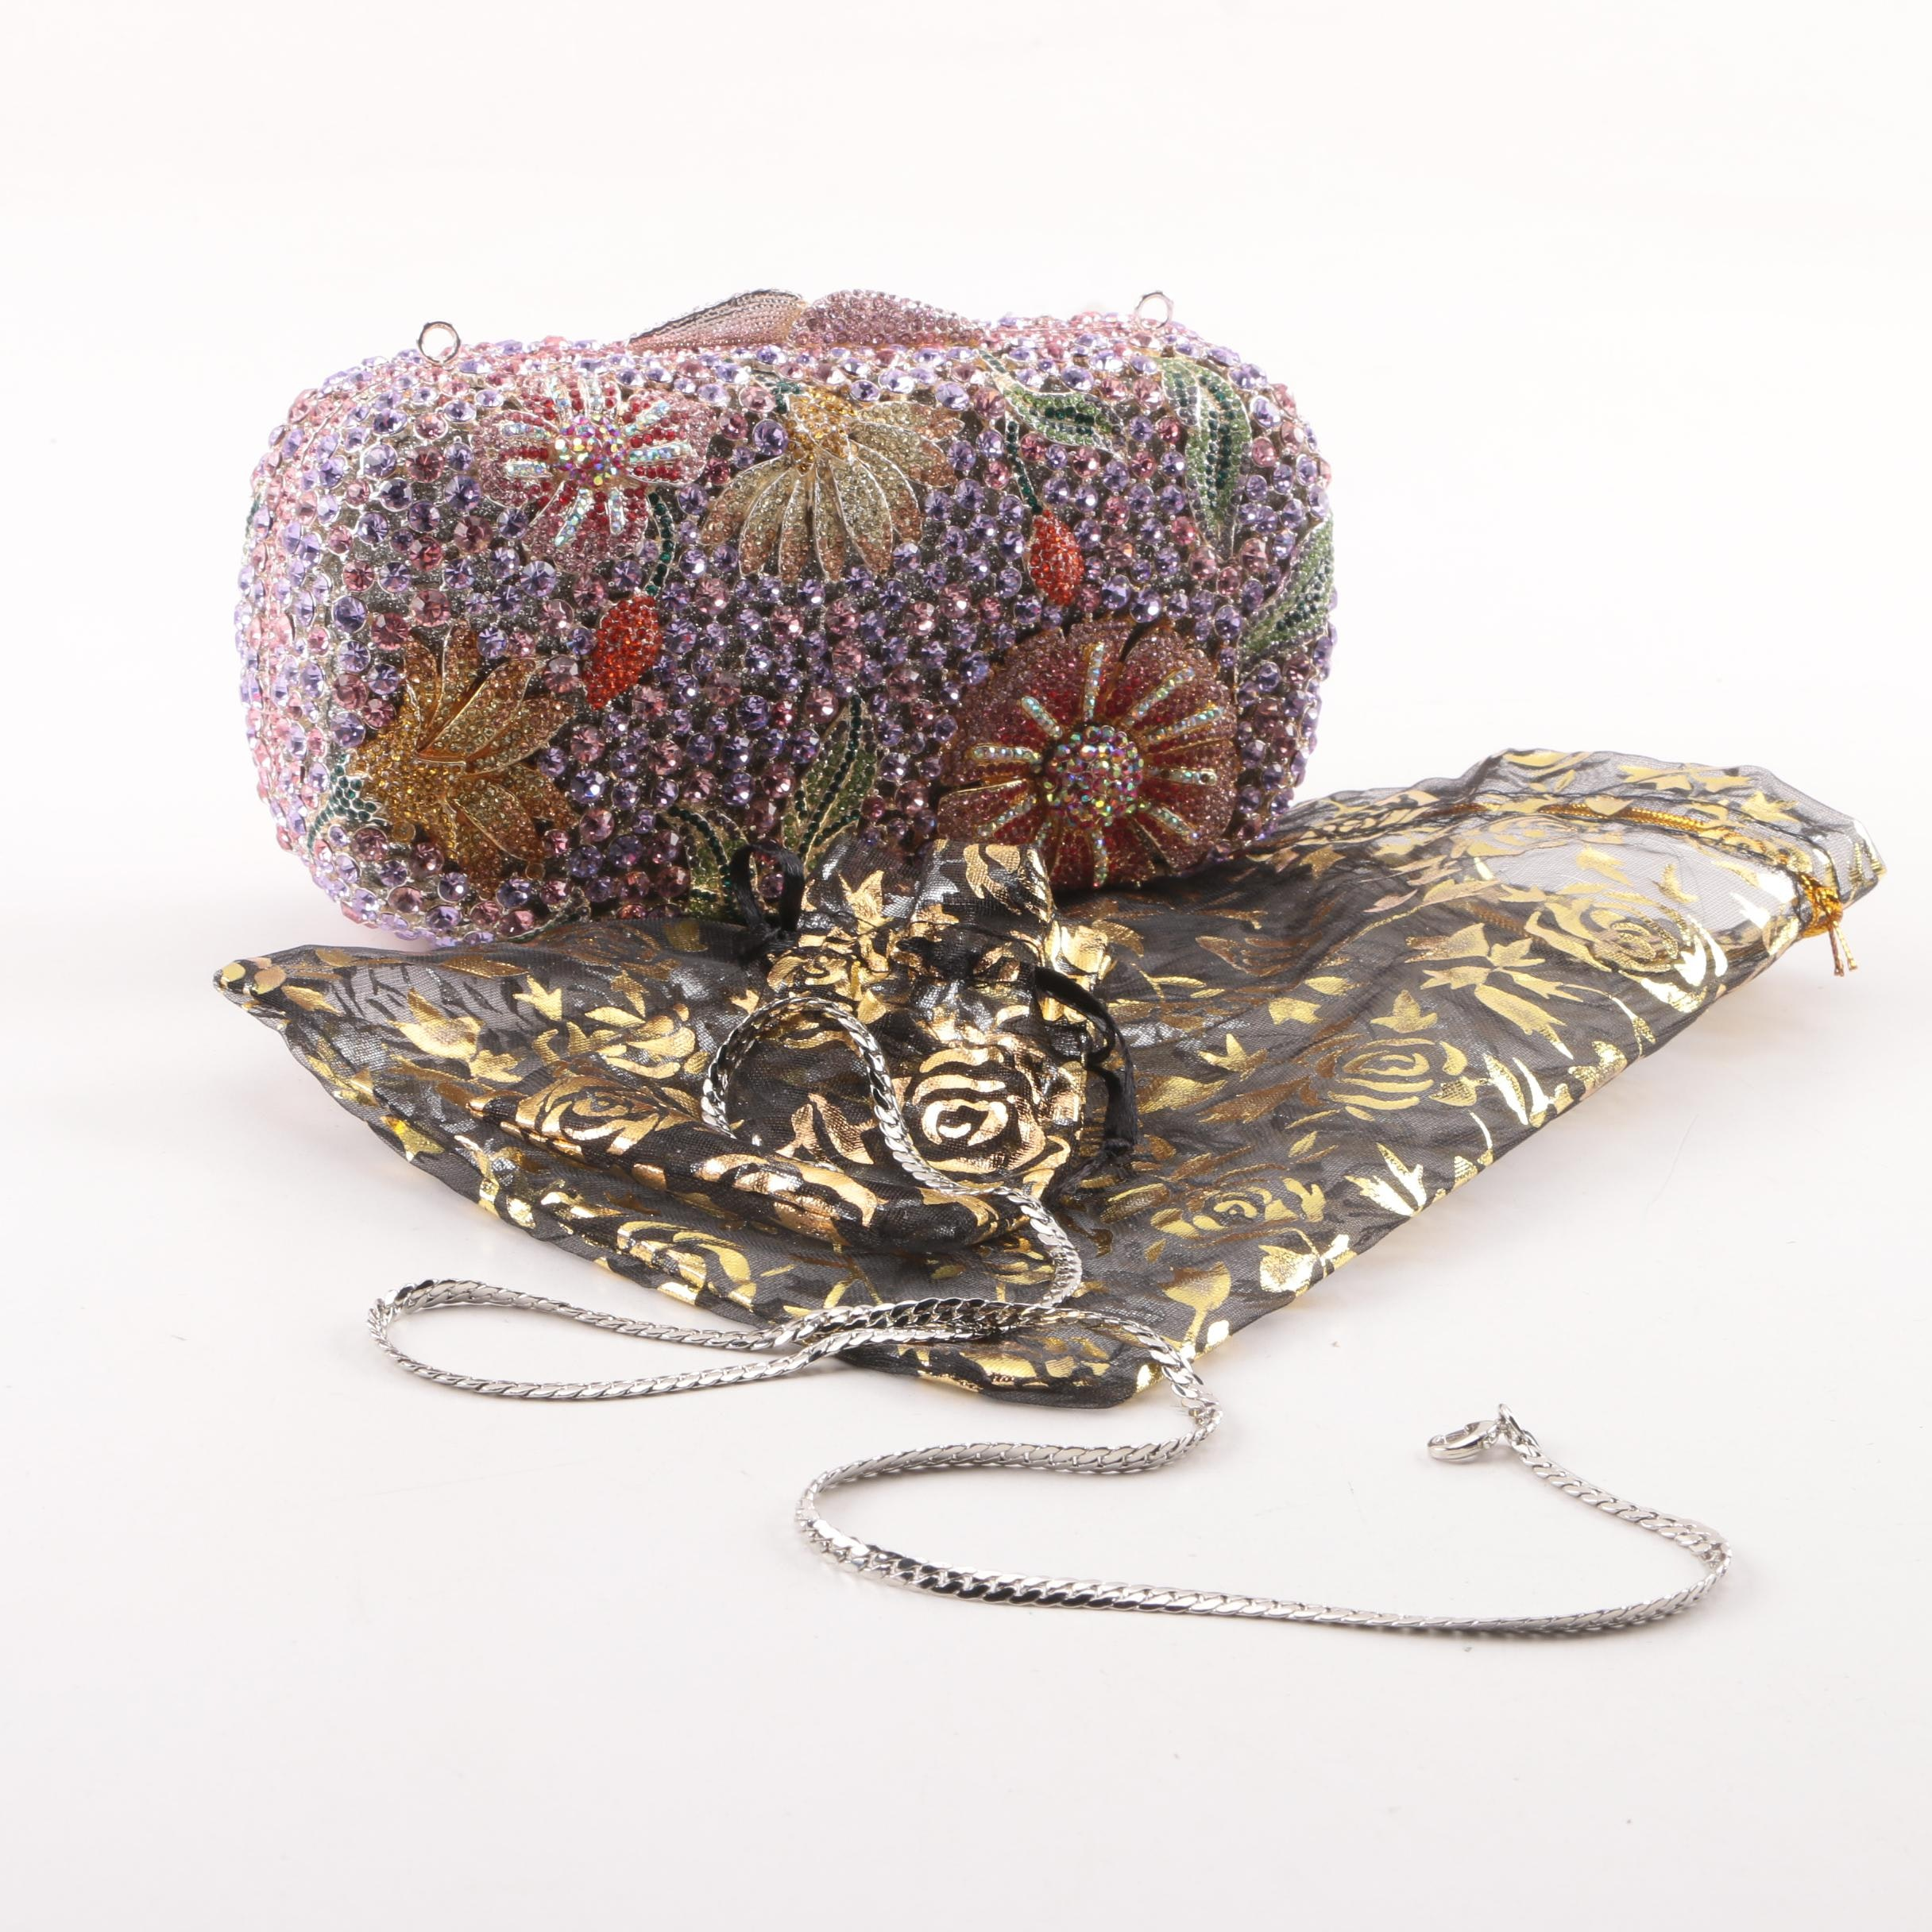 Floral Rhinestone Clutch with Removable Strap